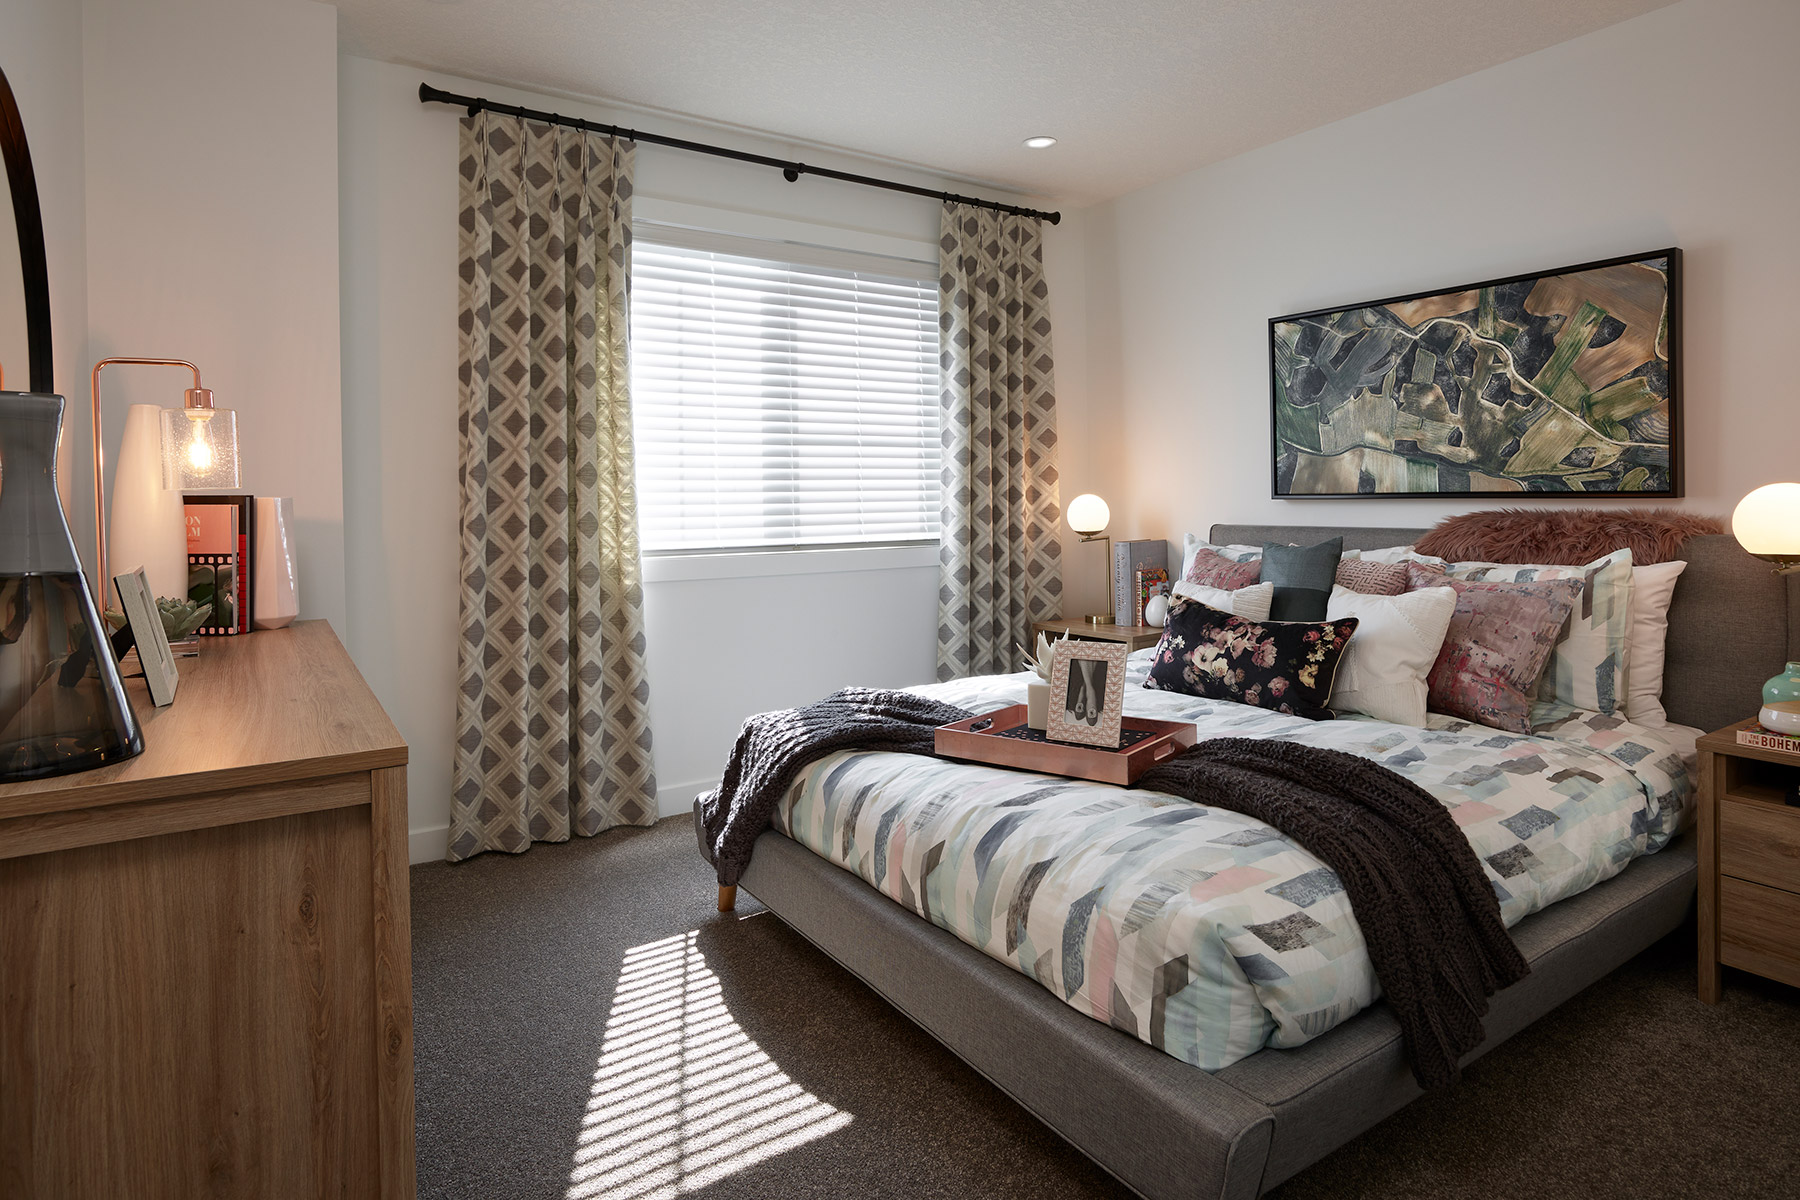 Palliser Plan Bedroom at Carrington in Calgary Alberta by Mattamy Homes